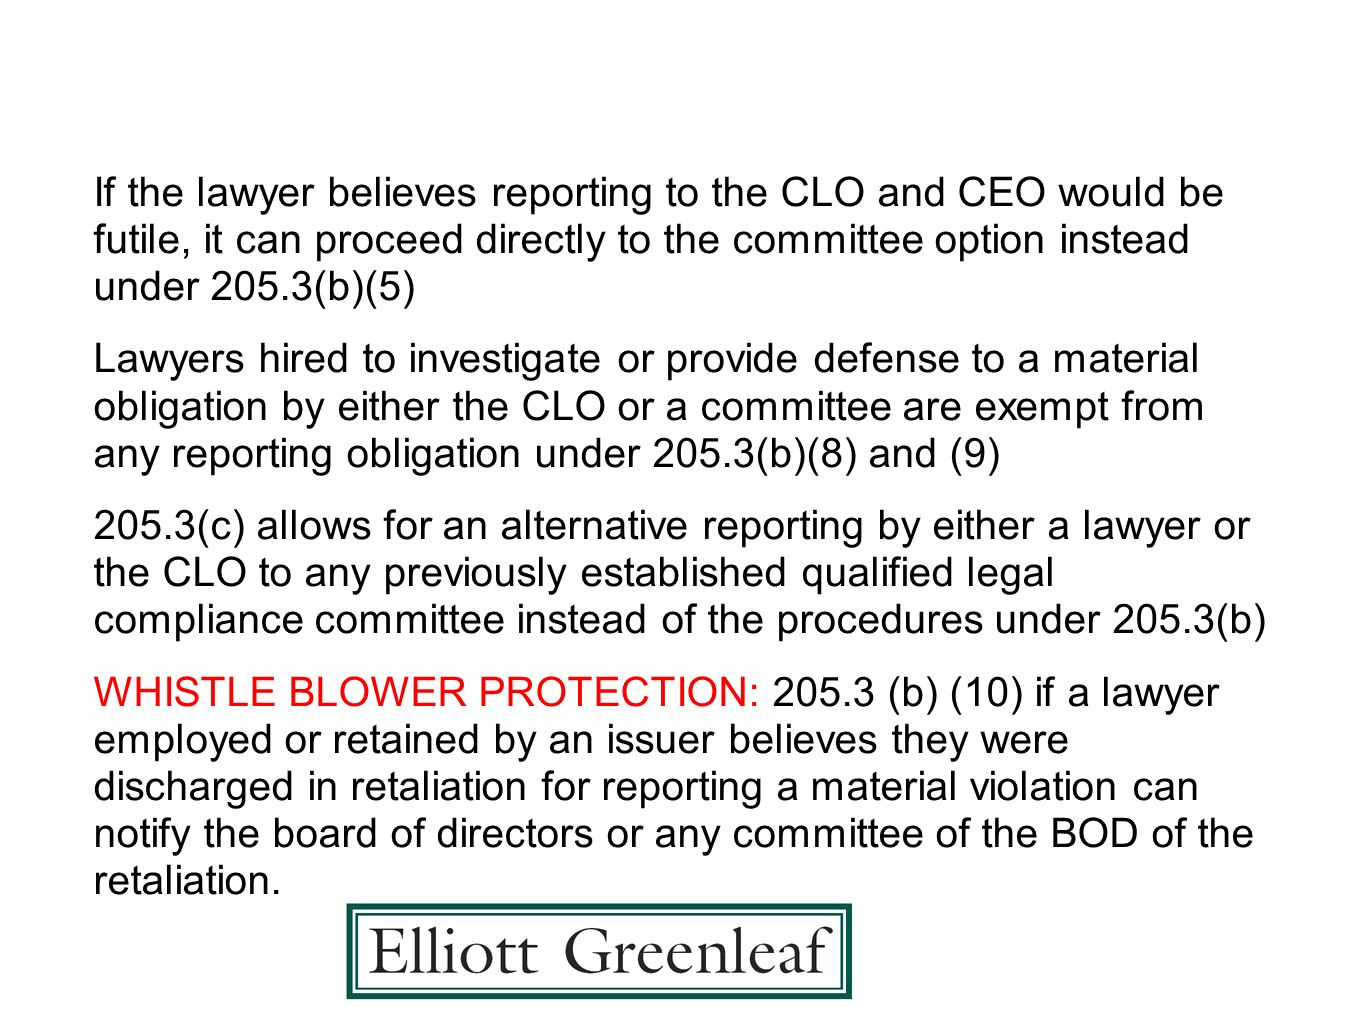 If the lawyer believes reporting to the CLO and CEO would be futile, it can proceed directly to the committee option instead under 205.3(b)(5)